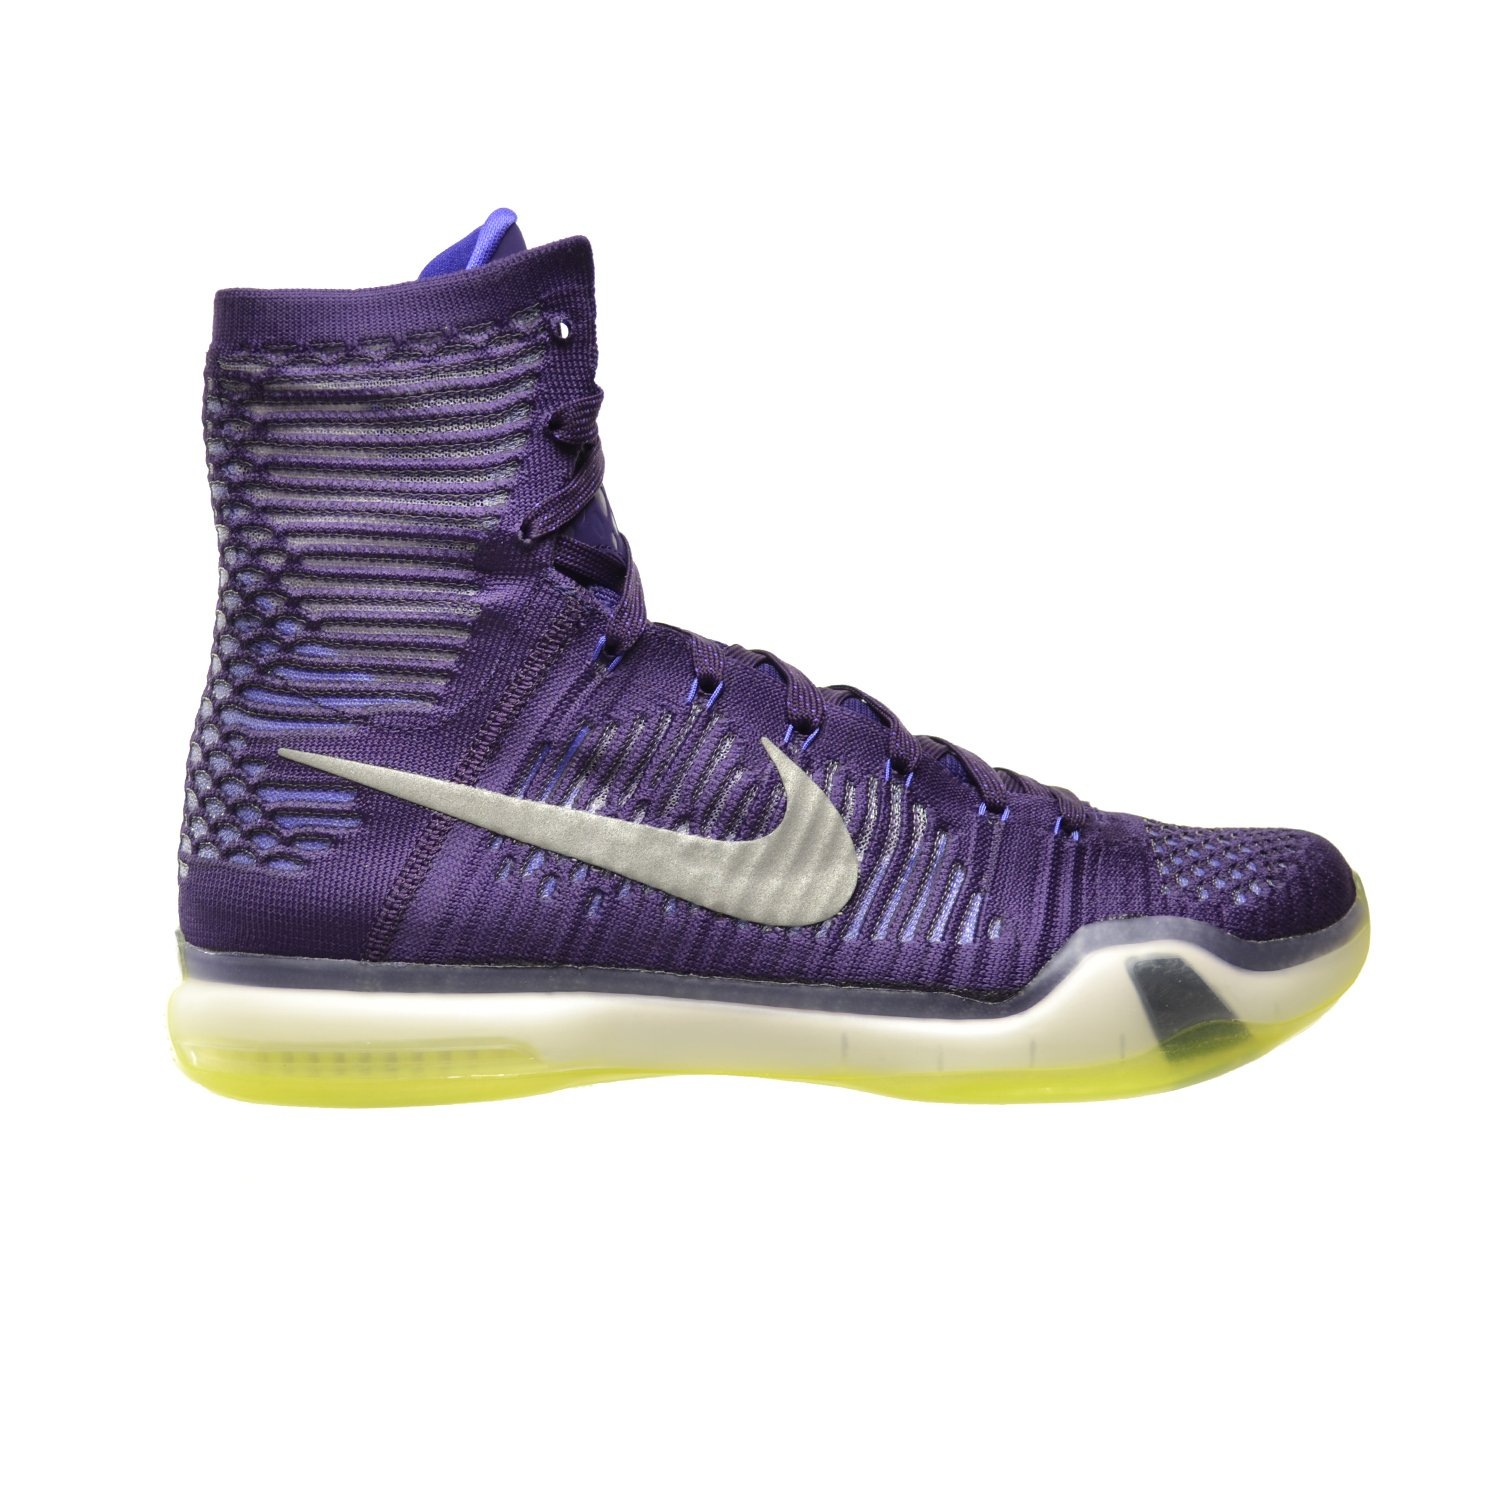 huge discount 43e31 424f8 Amazon.com   Nike Kobe X Elite Men s Shoes Grand Purple Reflect Silver- Persian Volt 718763-505 (9.5 D(M) US)   Basketball